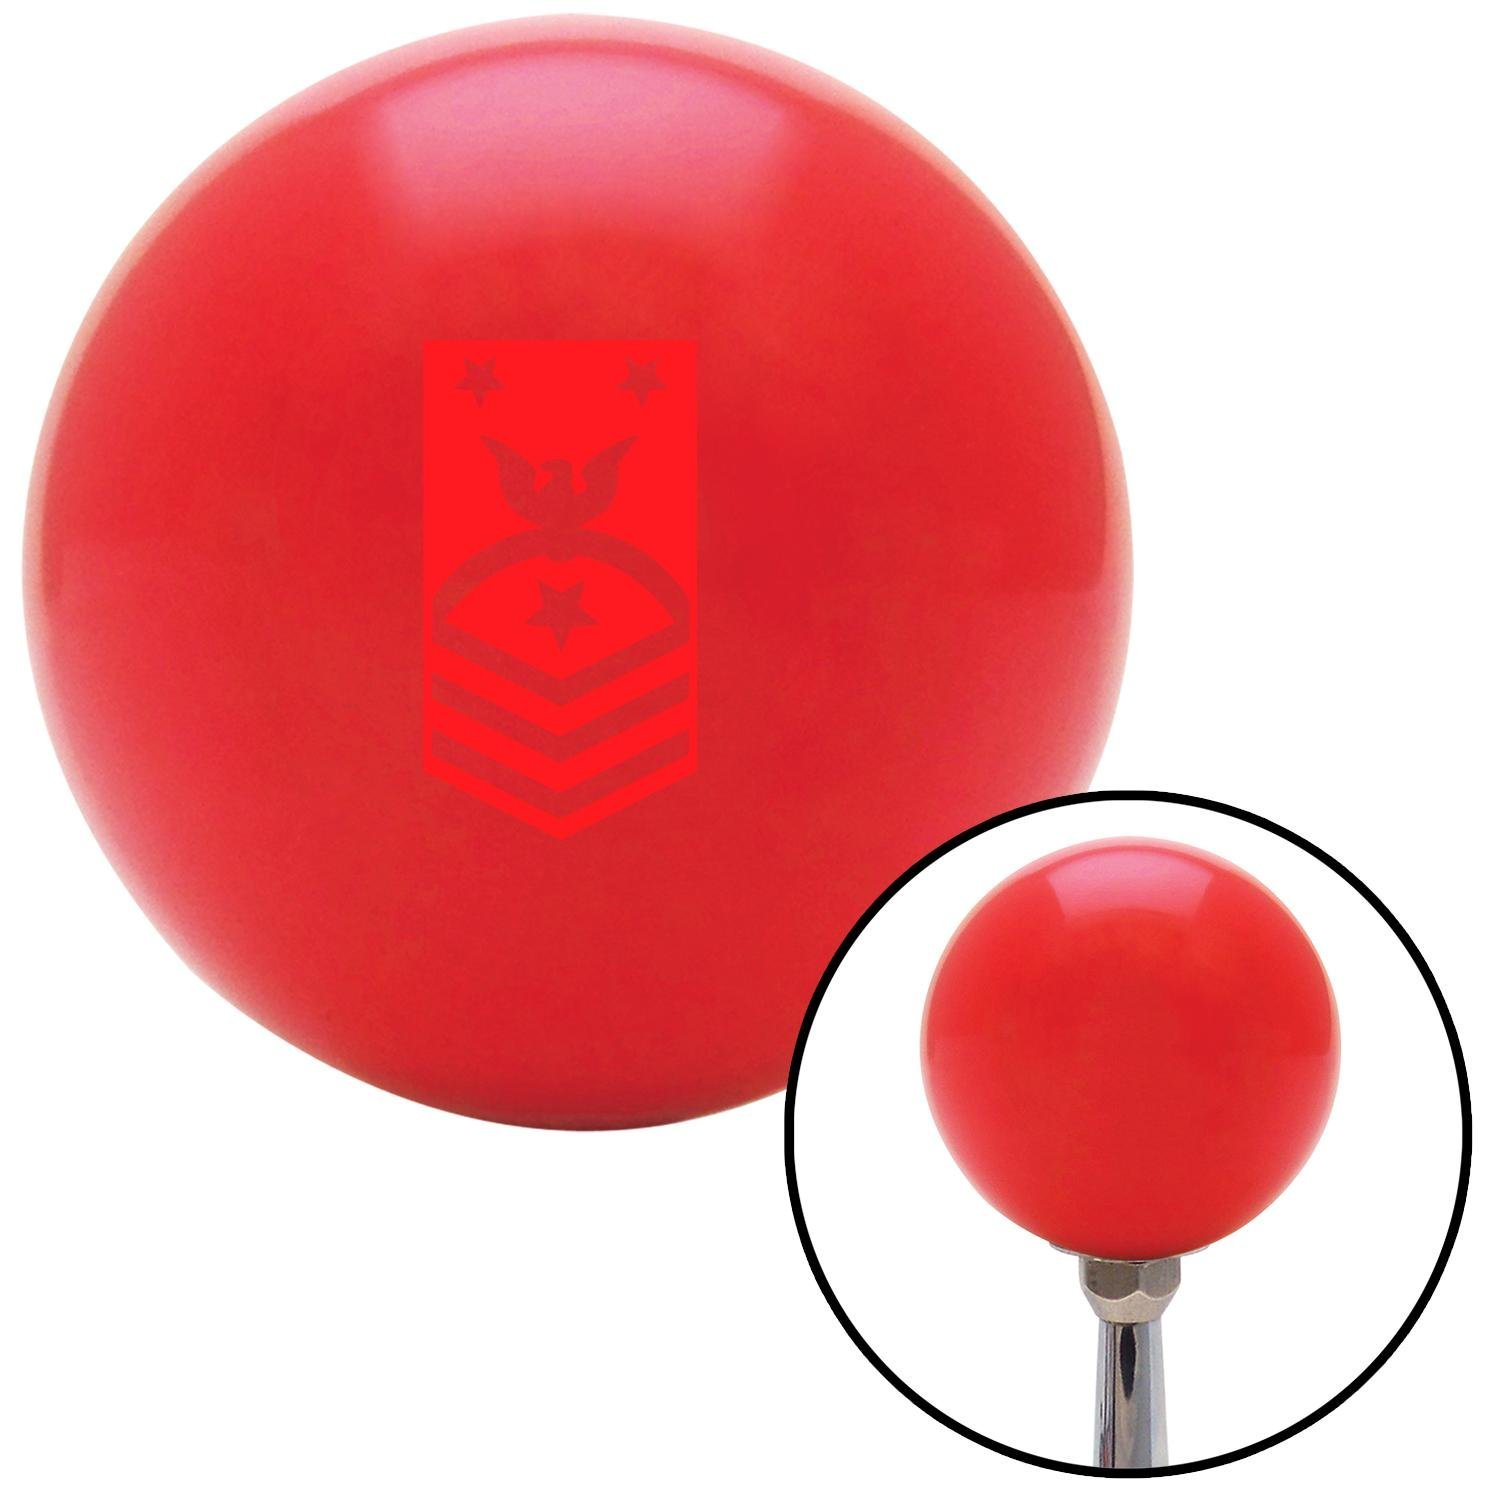 American Shifter 98319 Red Shift Knob with M16 x 1.5 Insert Red Force or Fleet Command